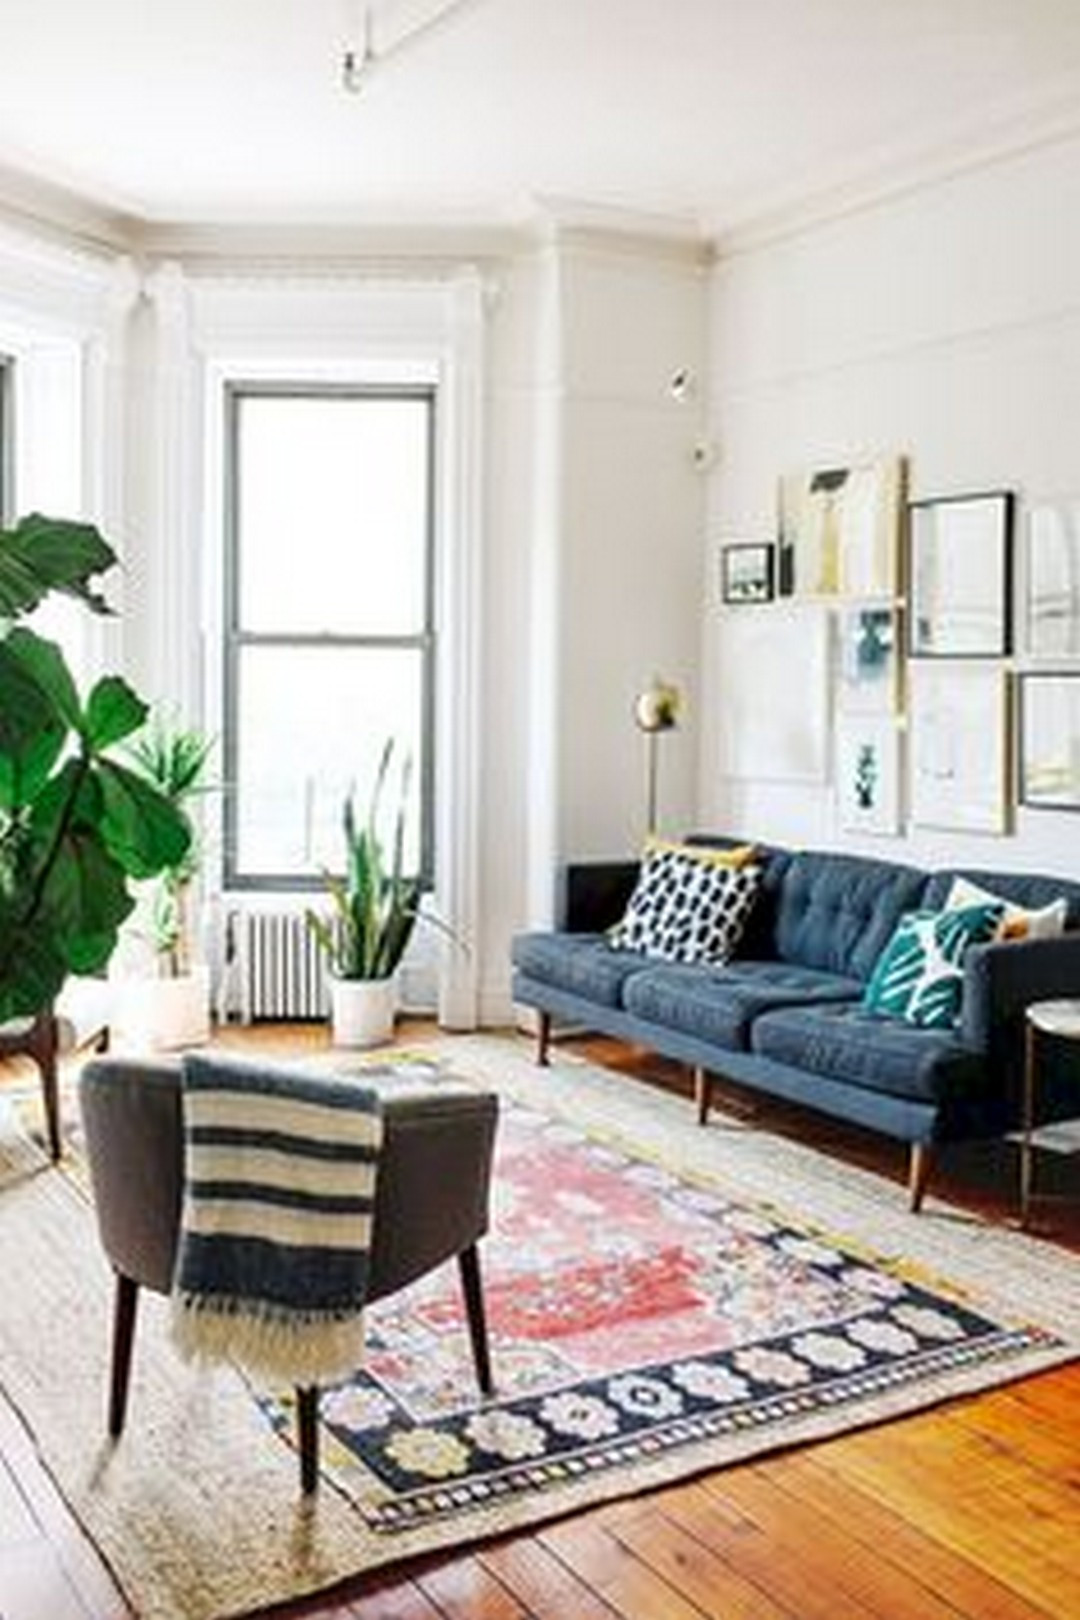 Best ideas about Decorating Small Living Room . Save or Pin Perfect And Cozy Small Living Room Design 5 De agz Now.